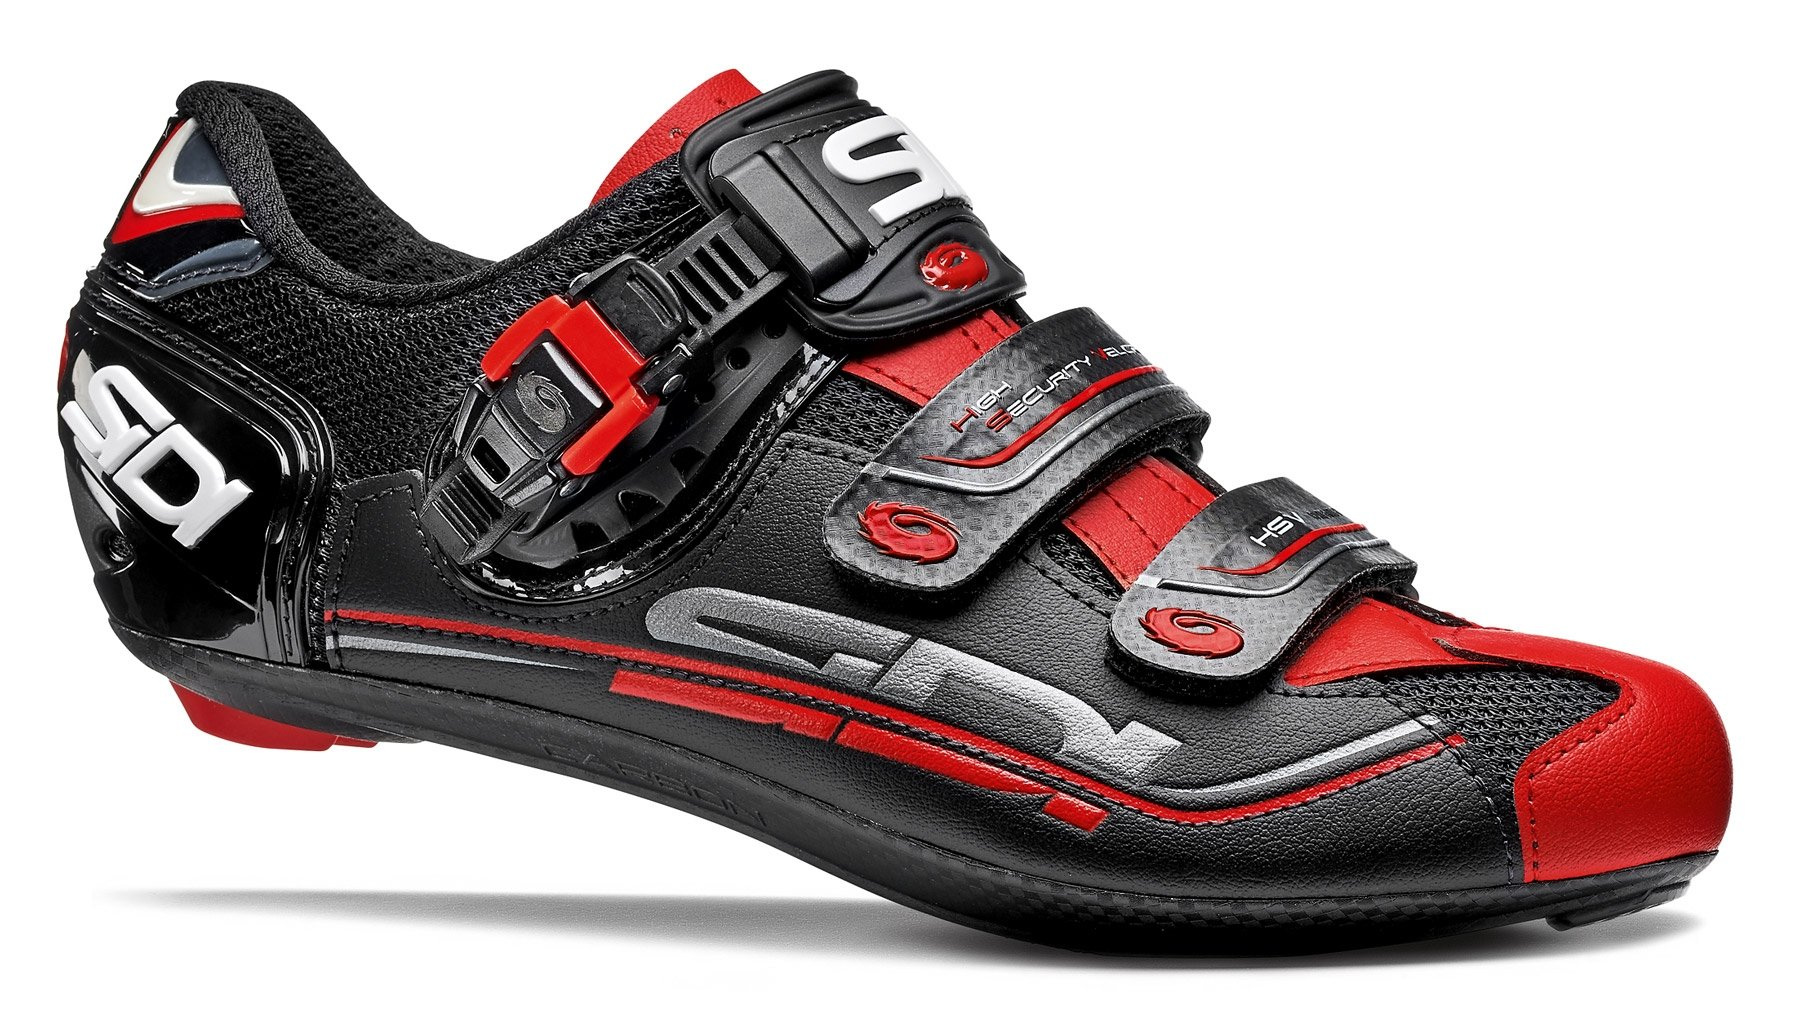 Sidi Genius 7 til racer/spinning | Shoes and overlays